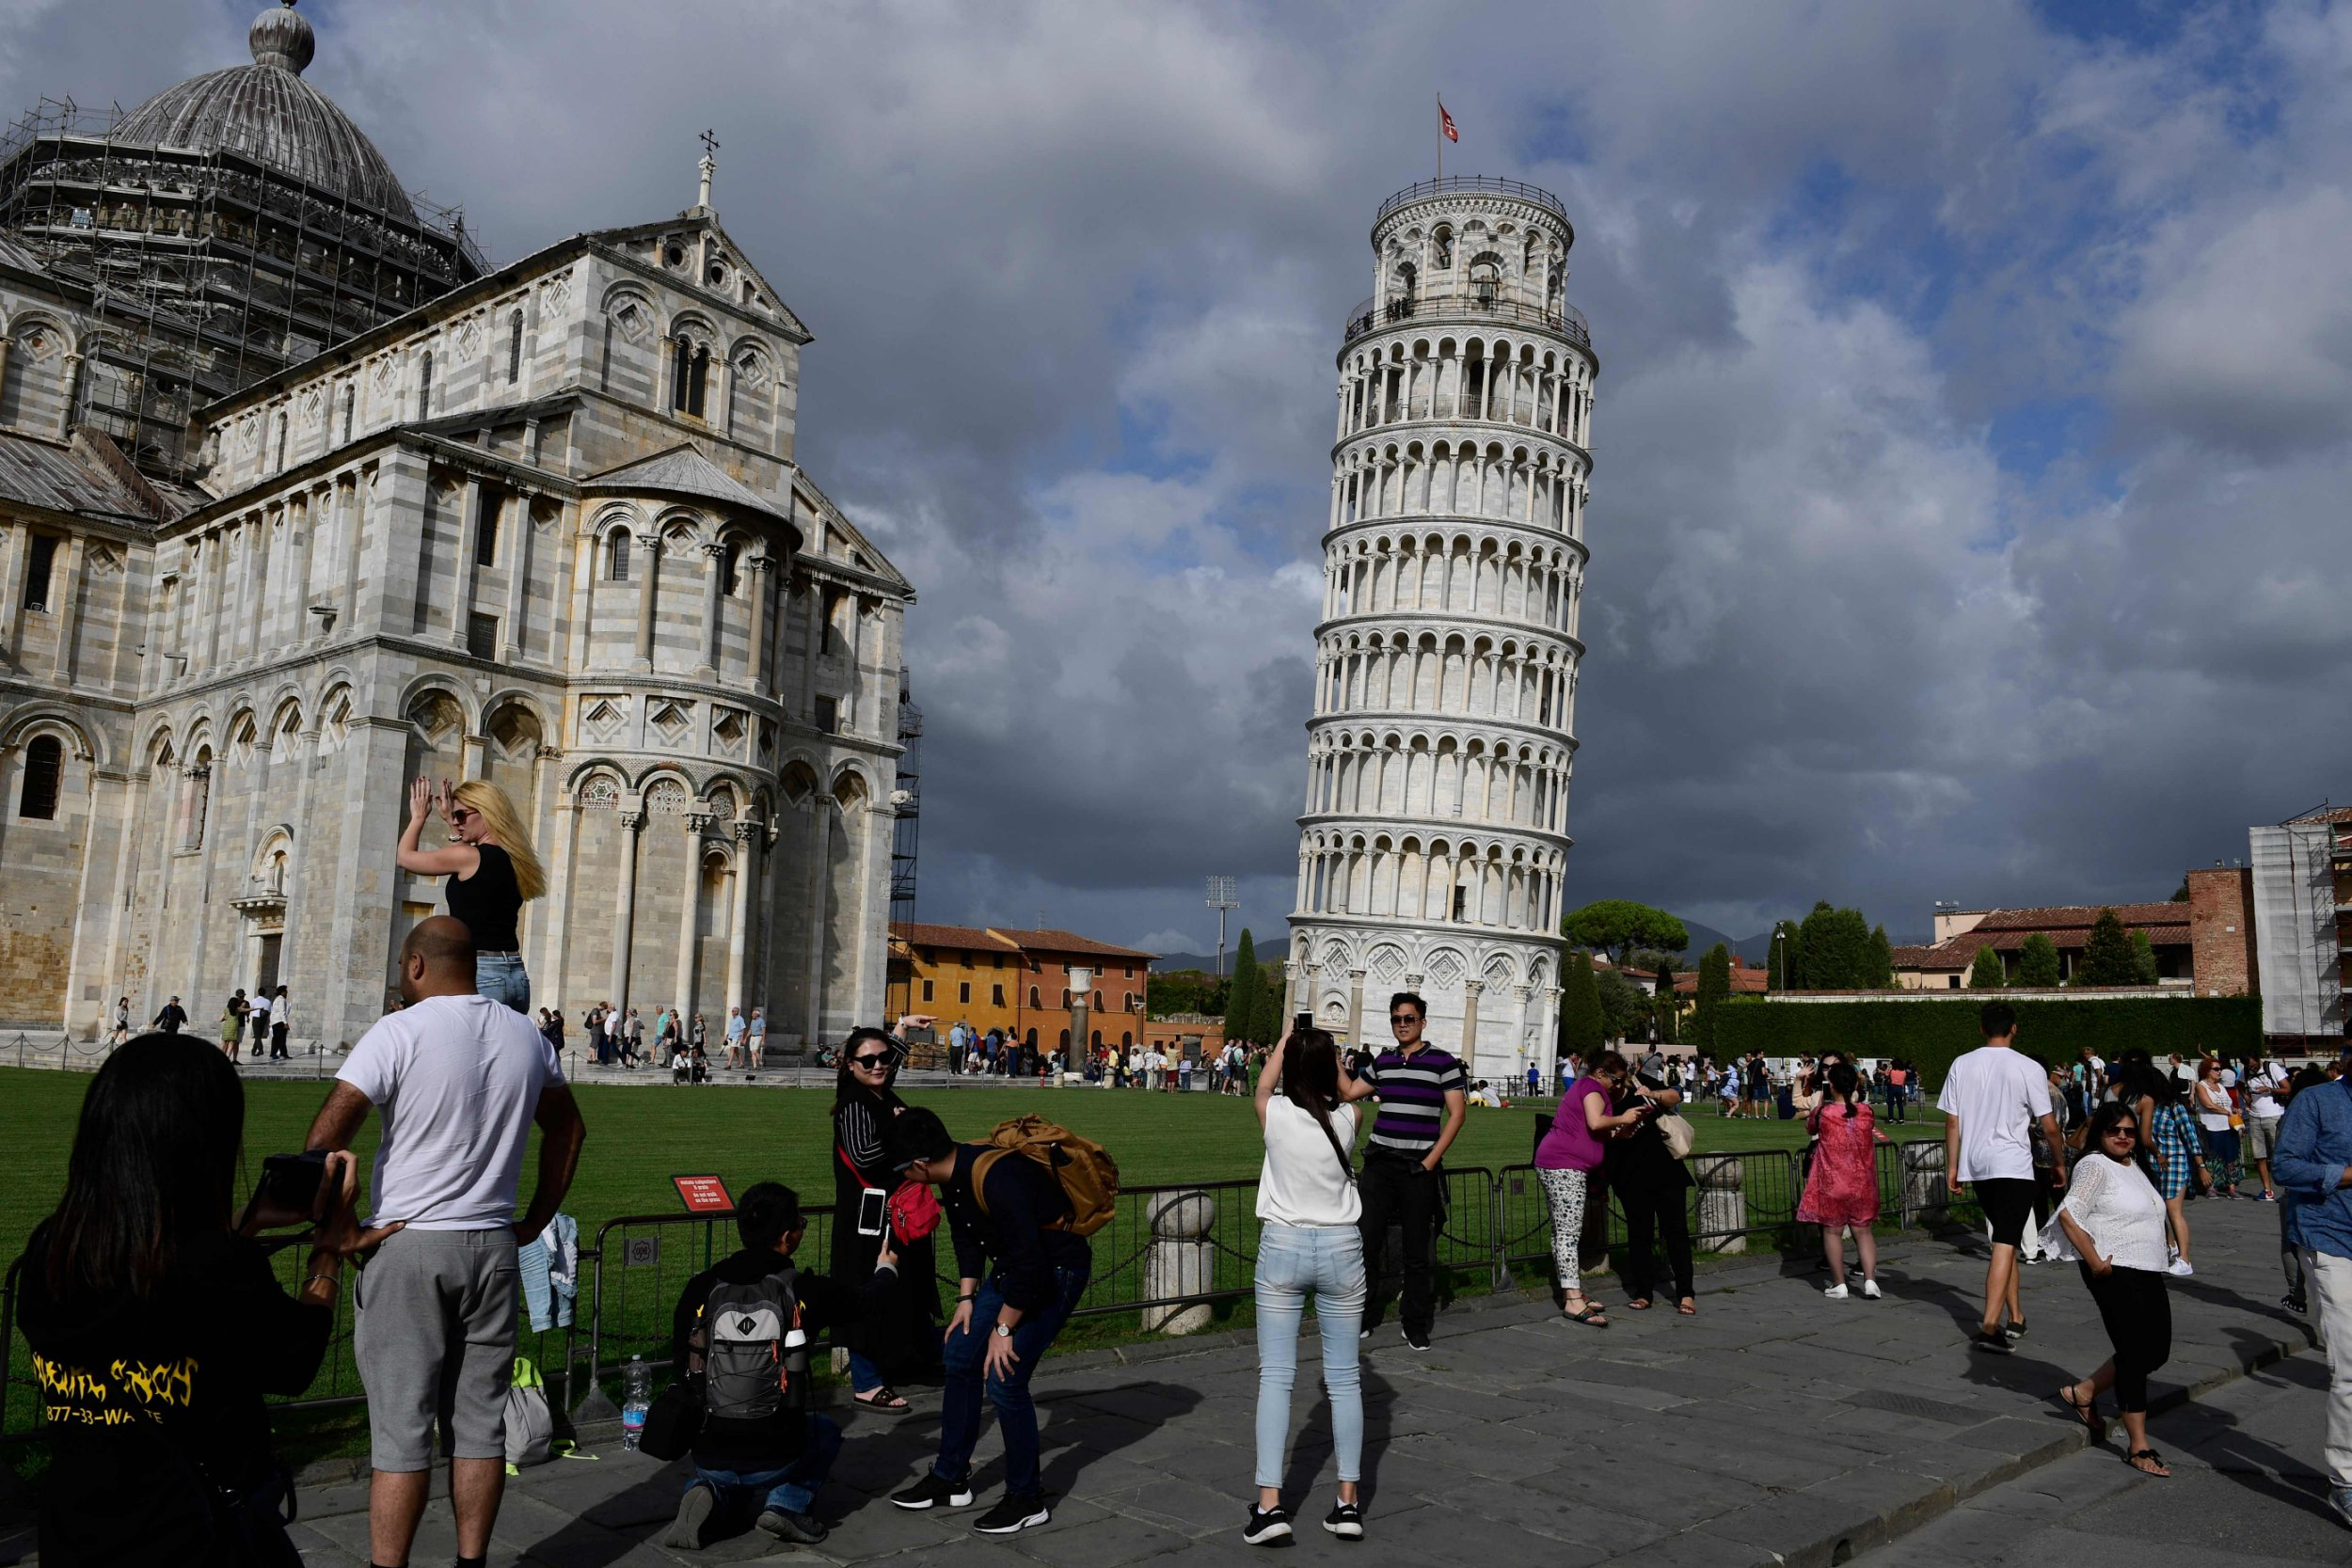 Leaning Tower of Pisa is not leaning as much as it used to